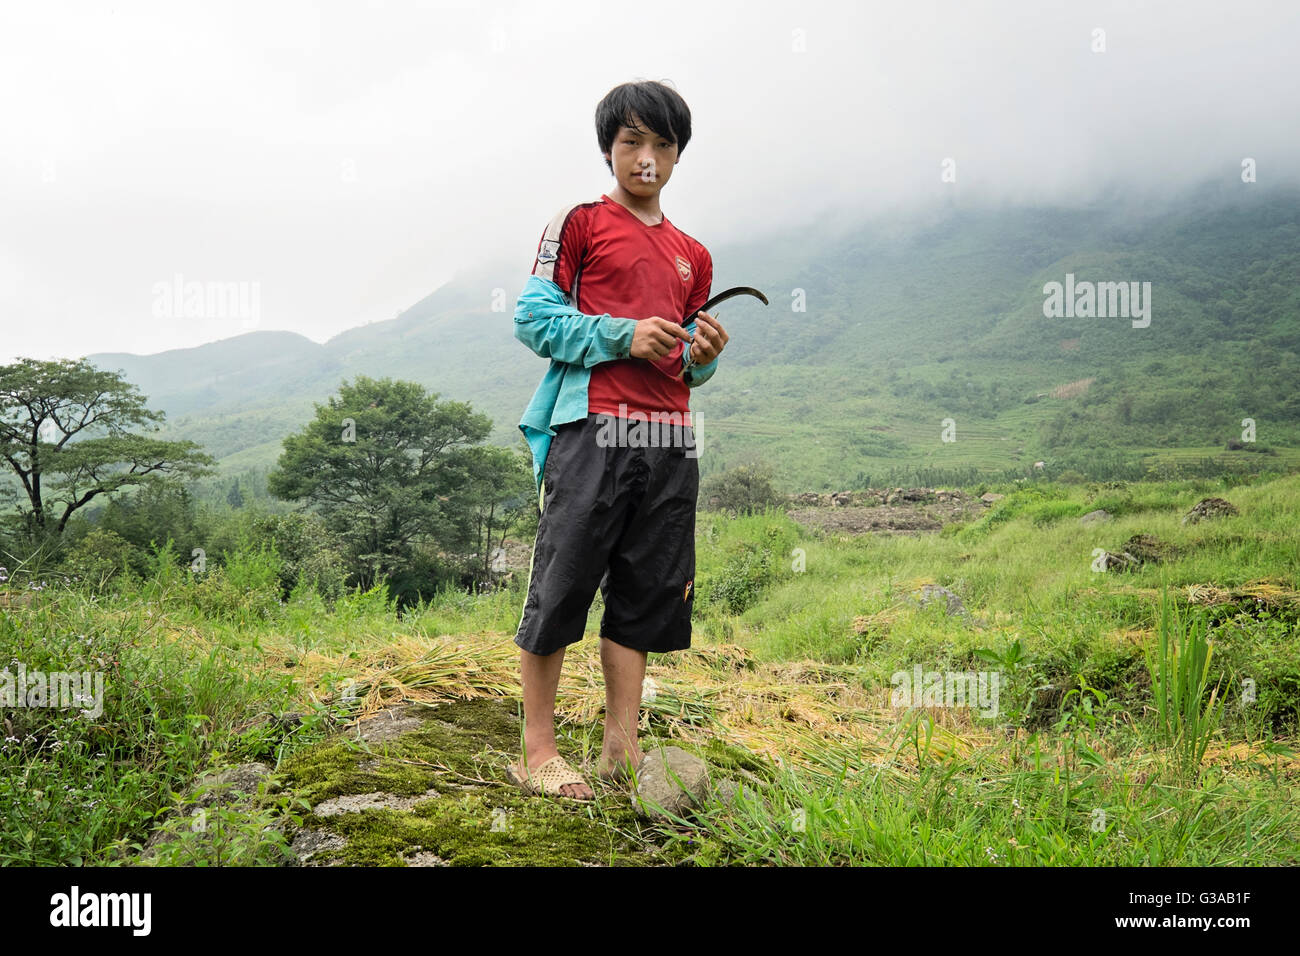 A young Hmong boy at the harvesting of rice in the village of Ta Phin, Sapa, Lao Cai Province, Vietnam - Stock Image